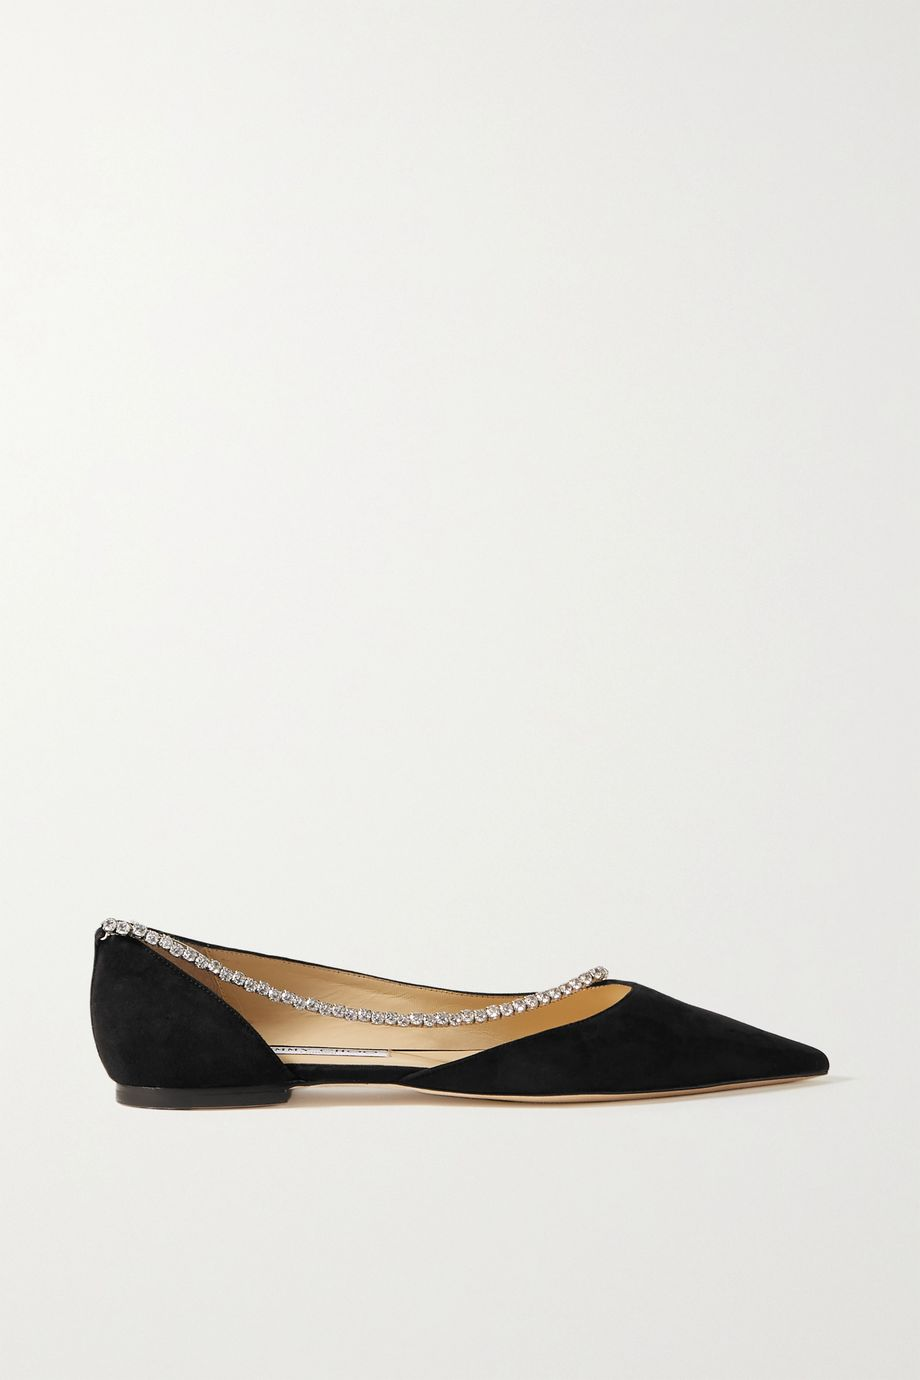 Jimmy Choo Trude crystal-embellished suede point-toe flats